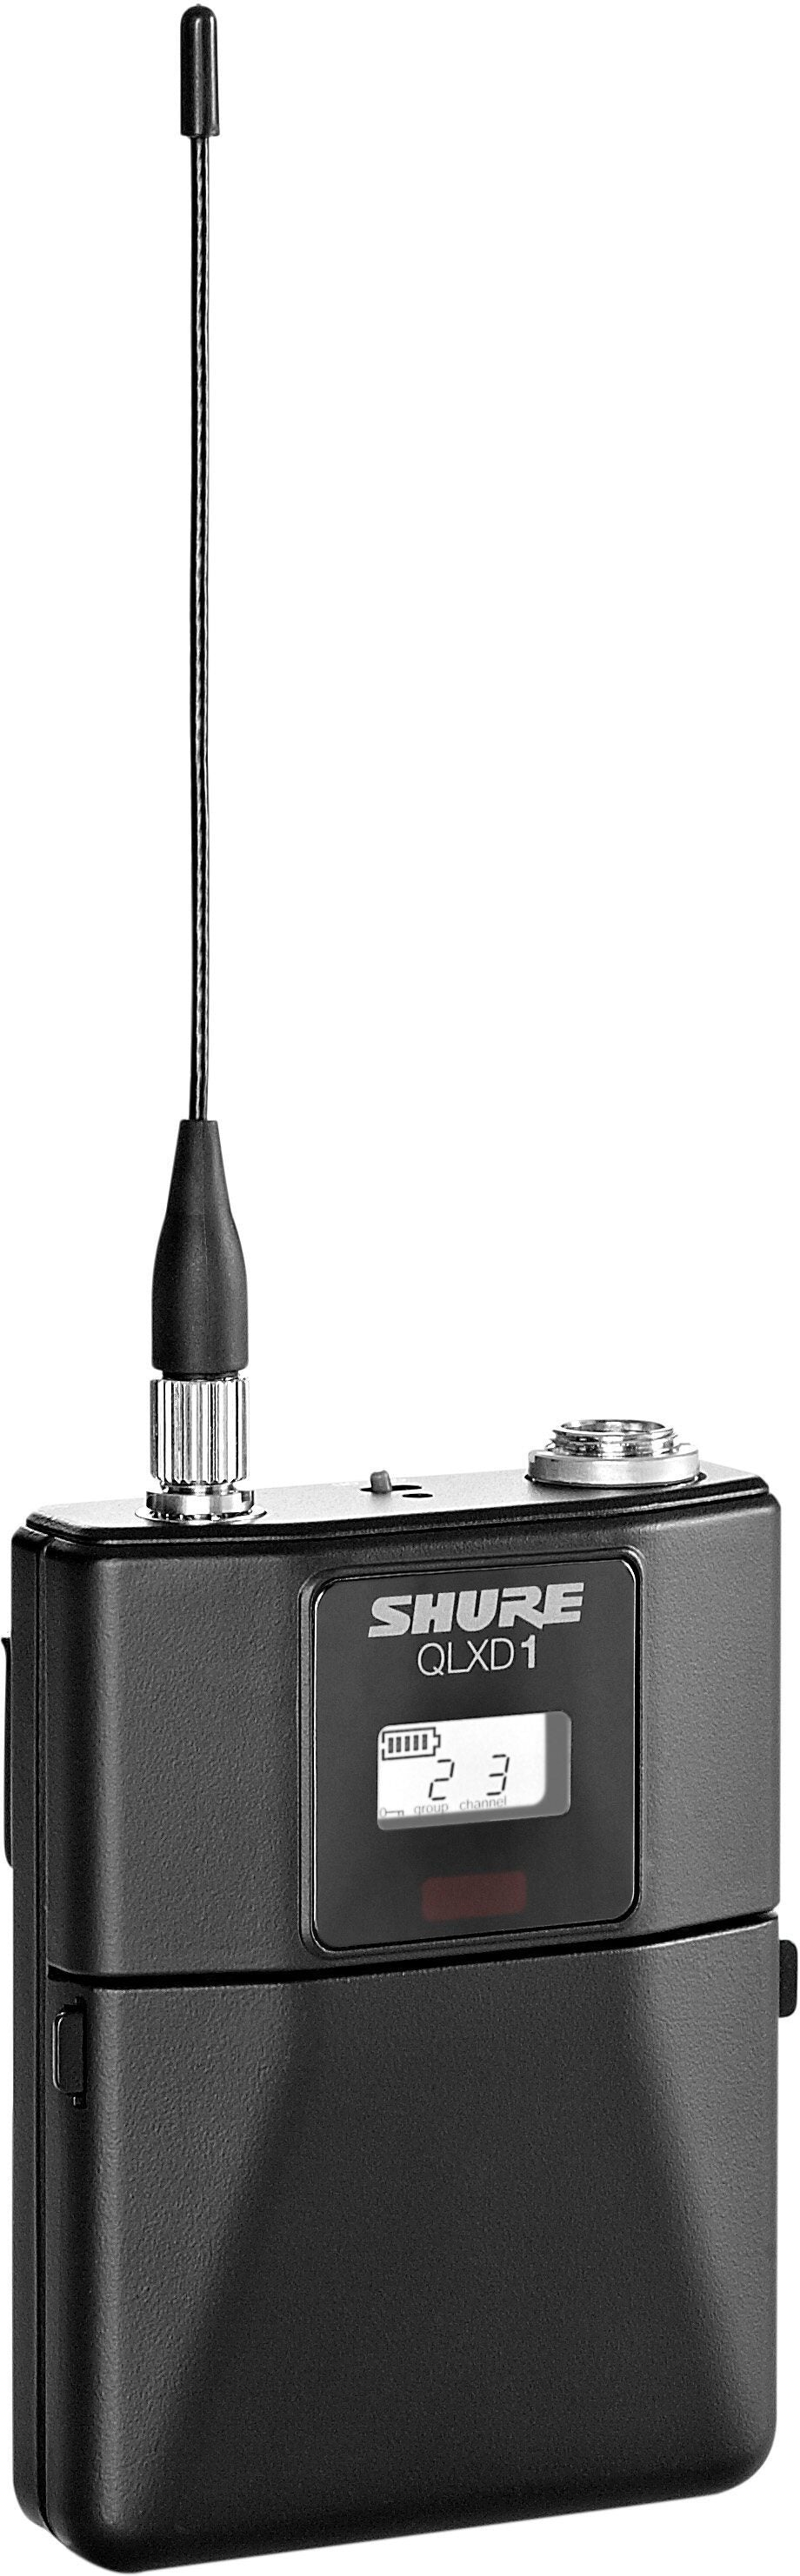 Shure QLXD1483 Wireless System with WL183 Lavalier Microphone, Band H50 (534 - 598 MHz)